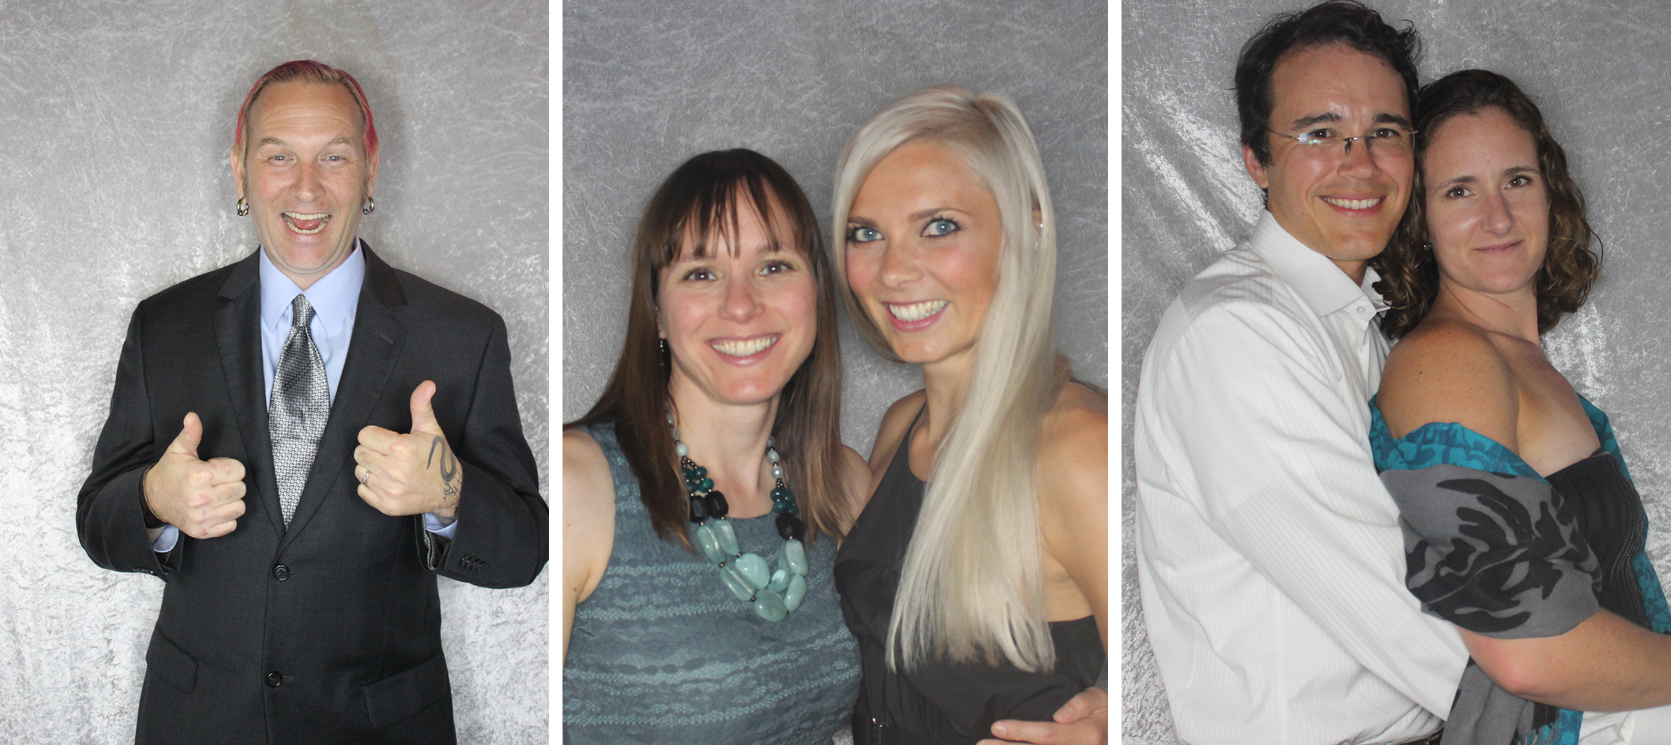 Images of Wedding Guests in the Photo Booth